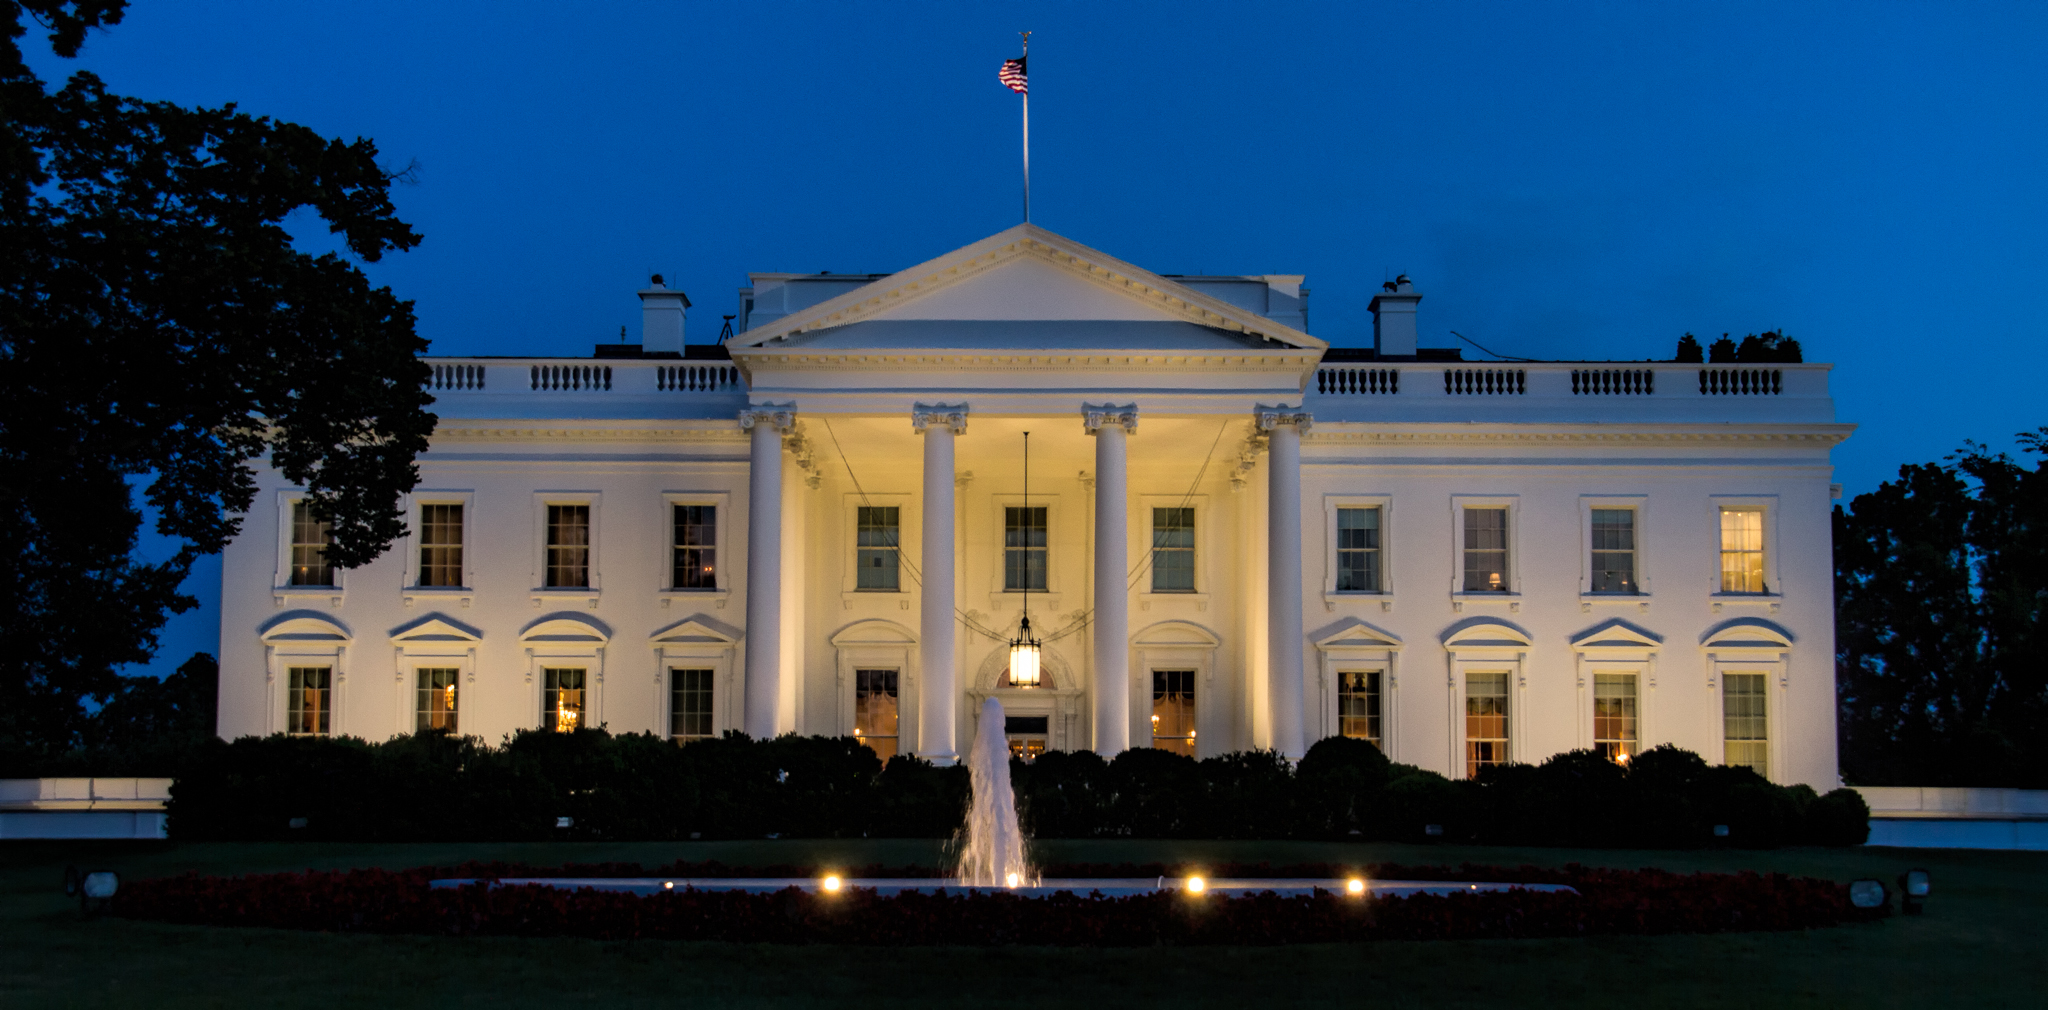 130608_WhiteHouse_Night by Karl G. Graf.